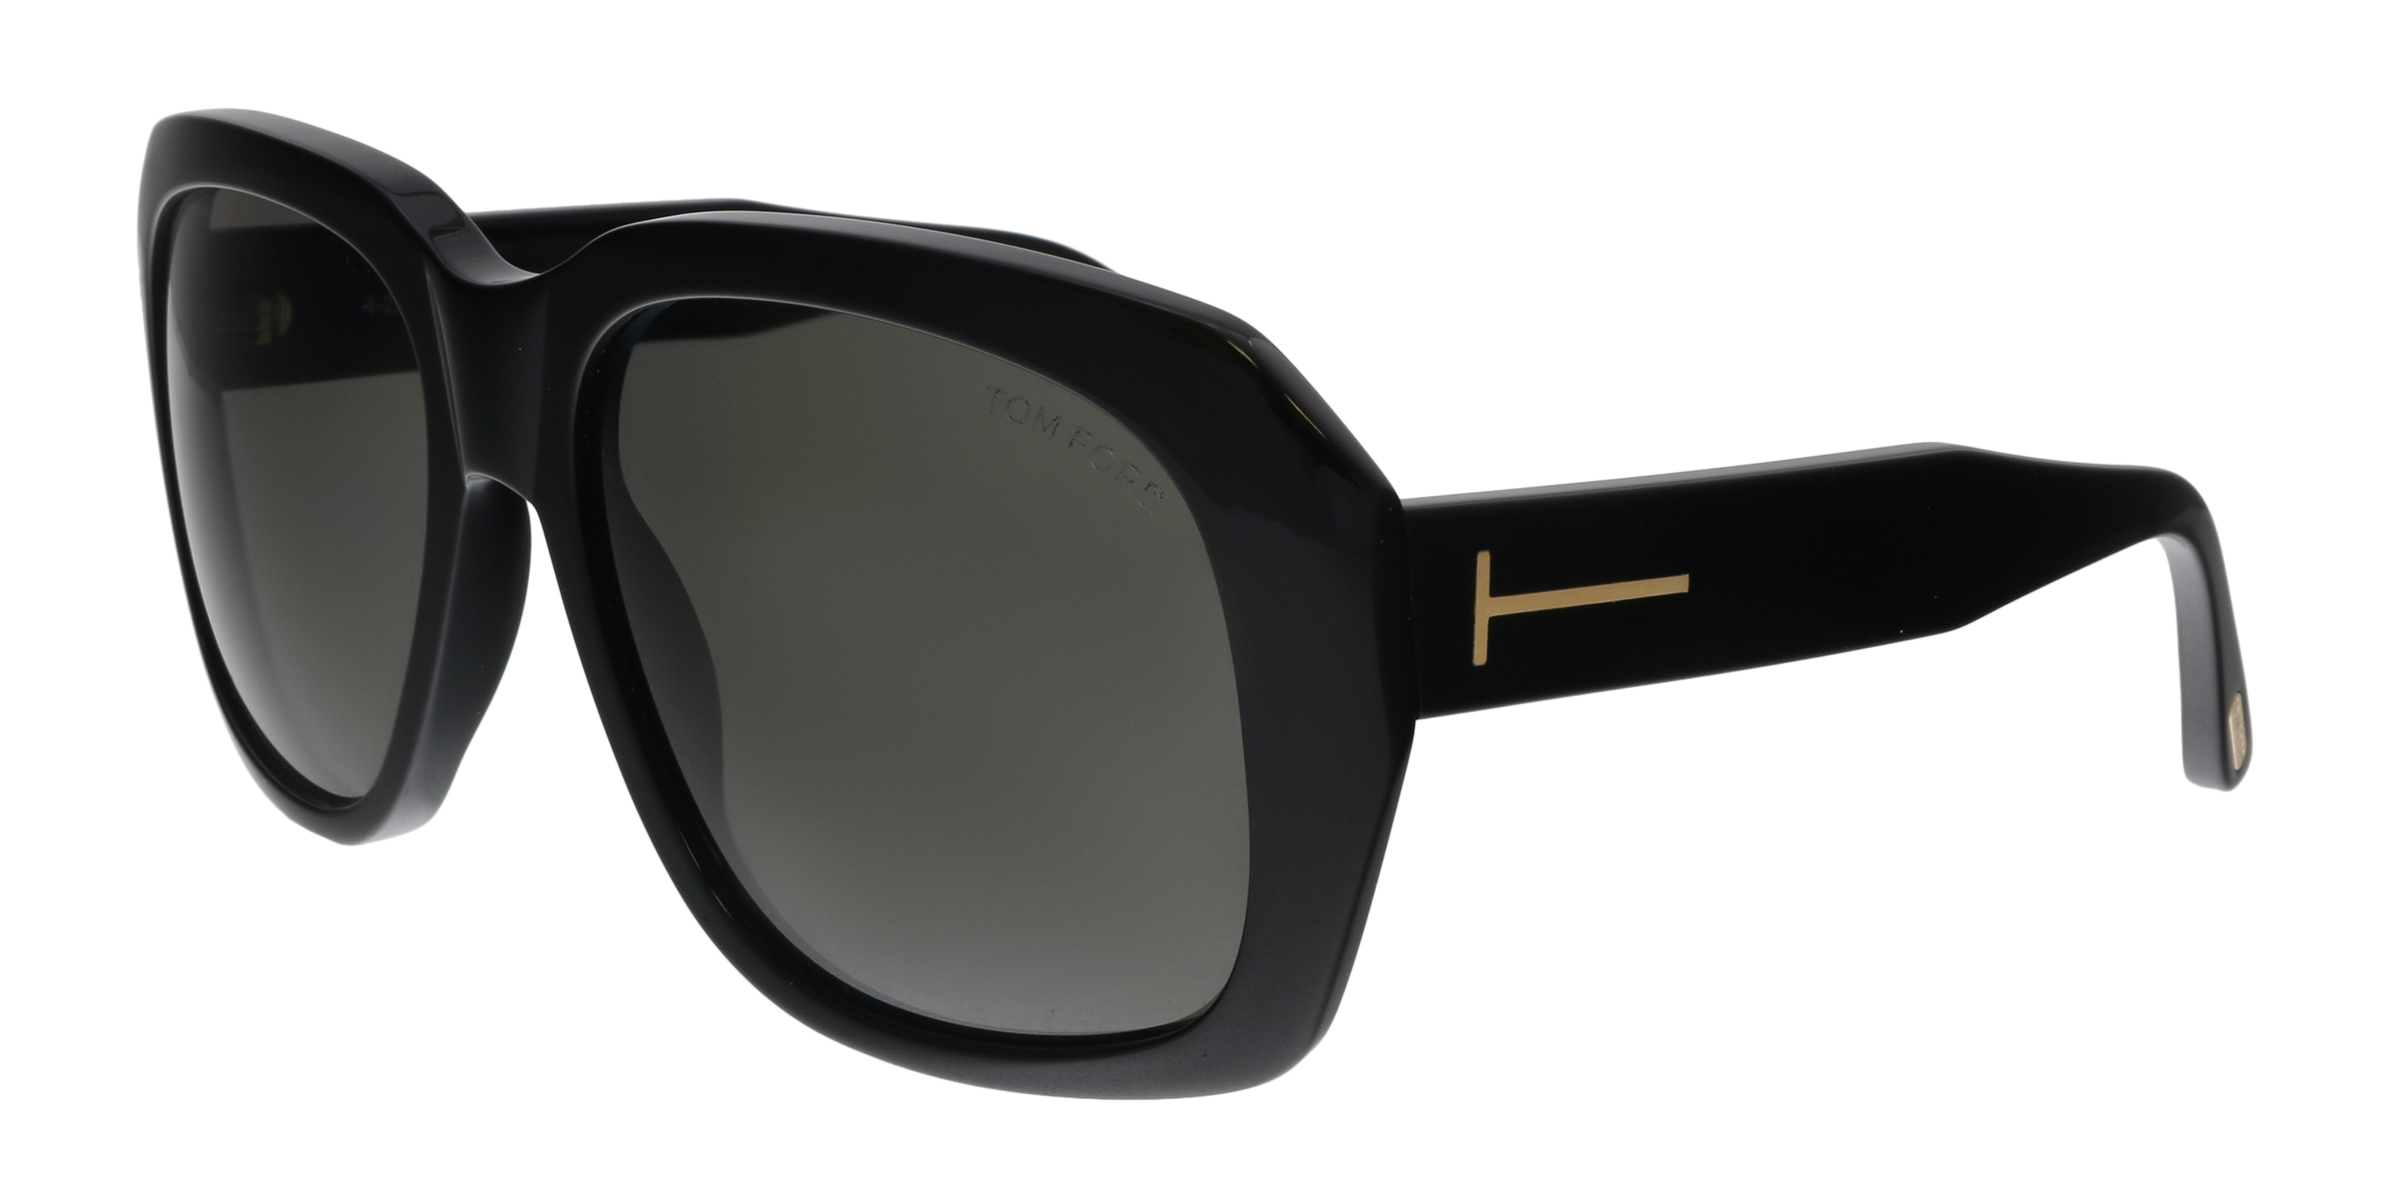 66a64df2bb Tom Ford FT0635 01A Andre-02 Black Square Sunglasses 664689926879